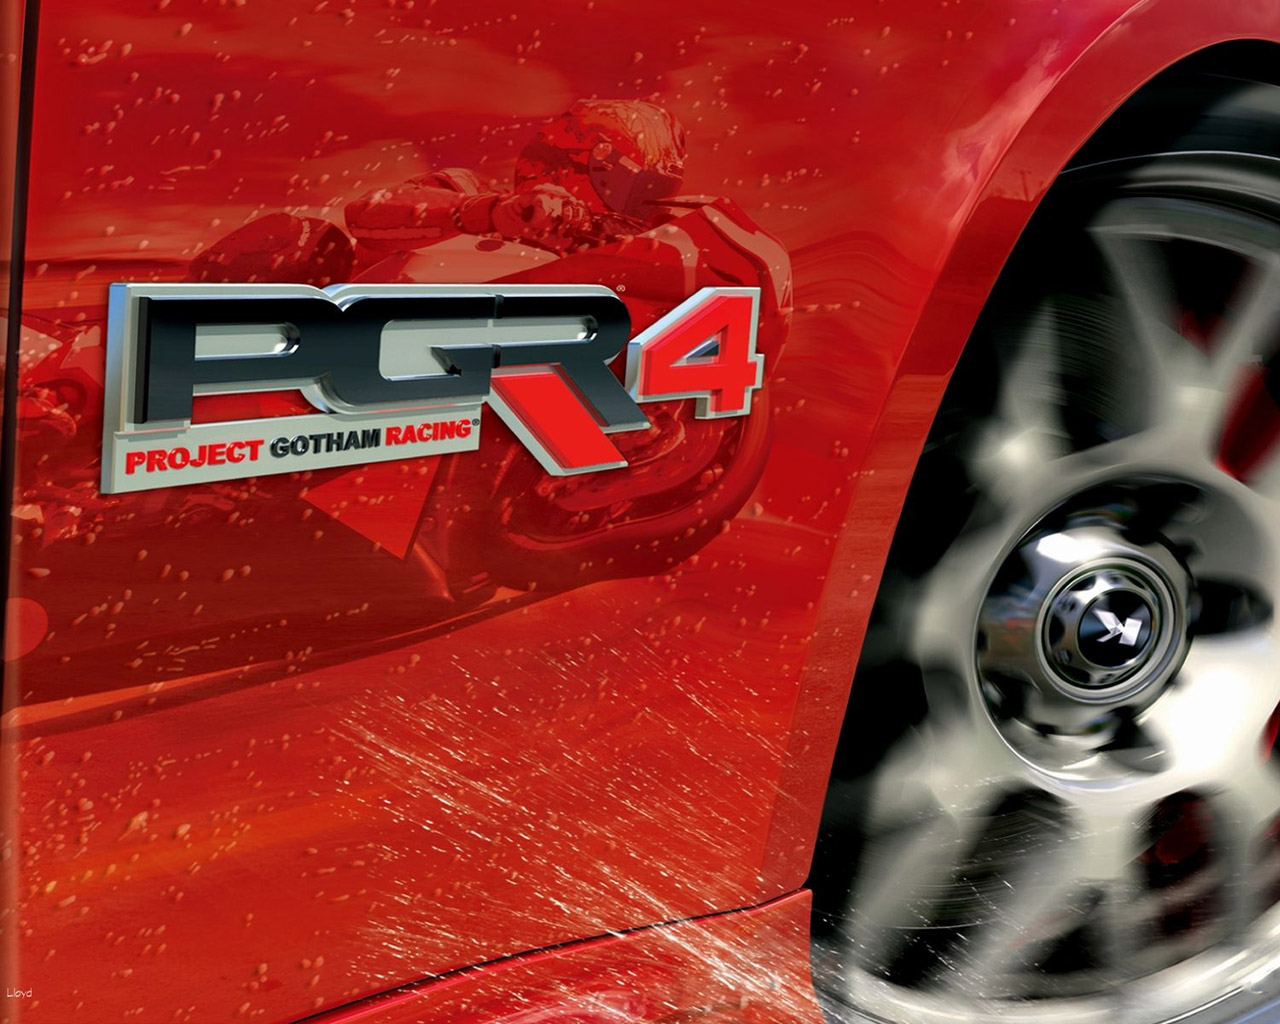 Project Gotham Racing 4 Wallpaper in 1280x1024